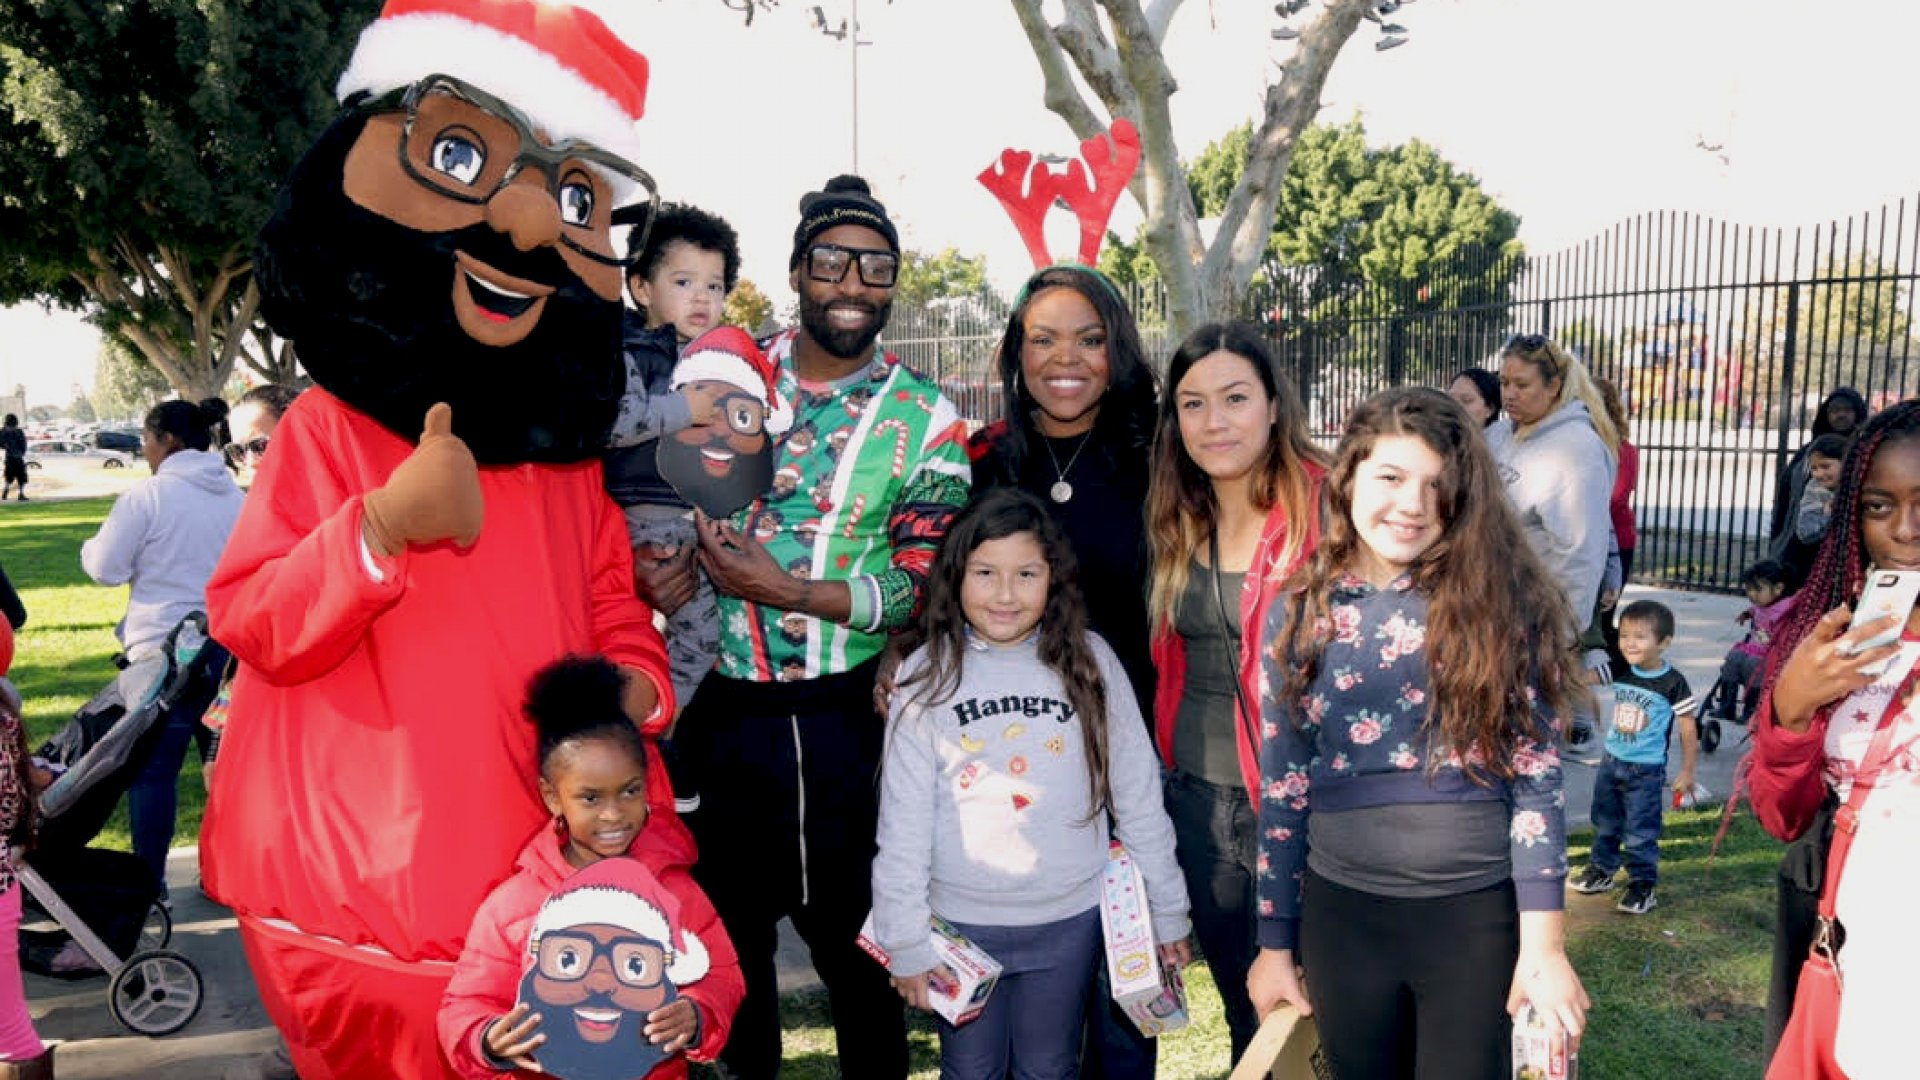 Baron Davis, the former NBA all-star, started the Black Santa Company to promote more diversity in popular culture.